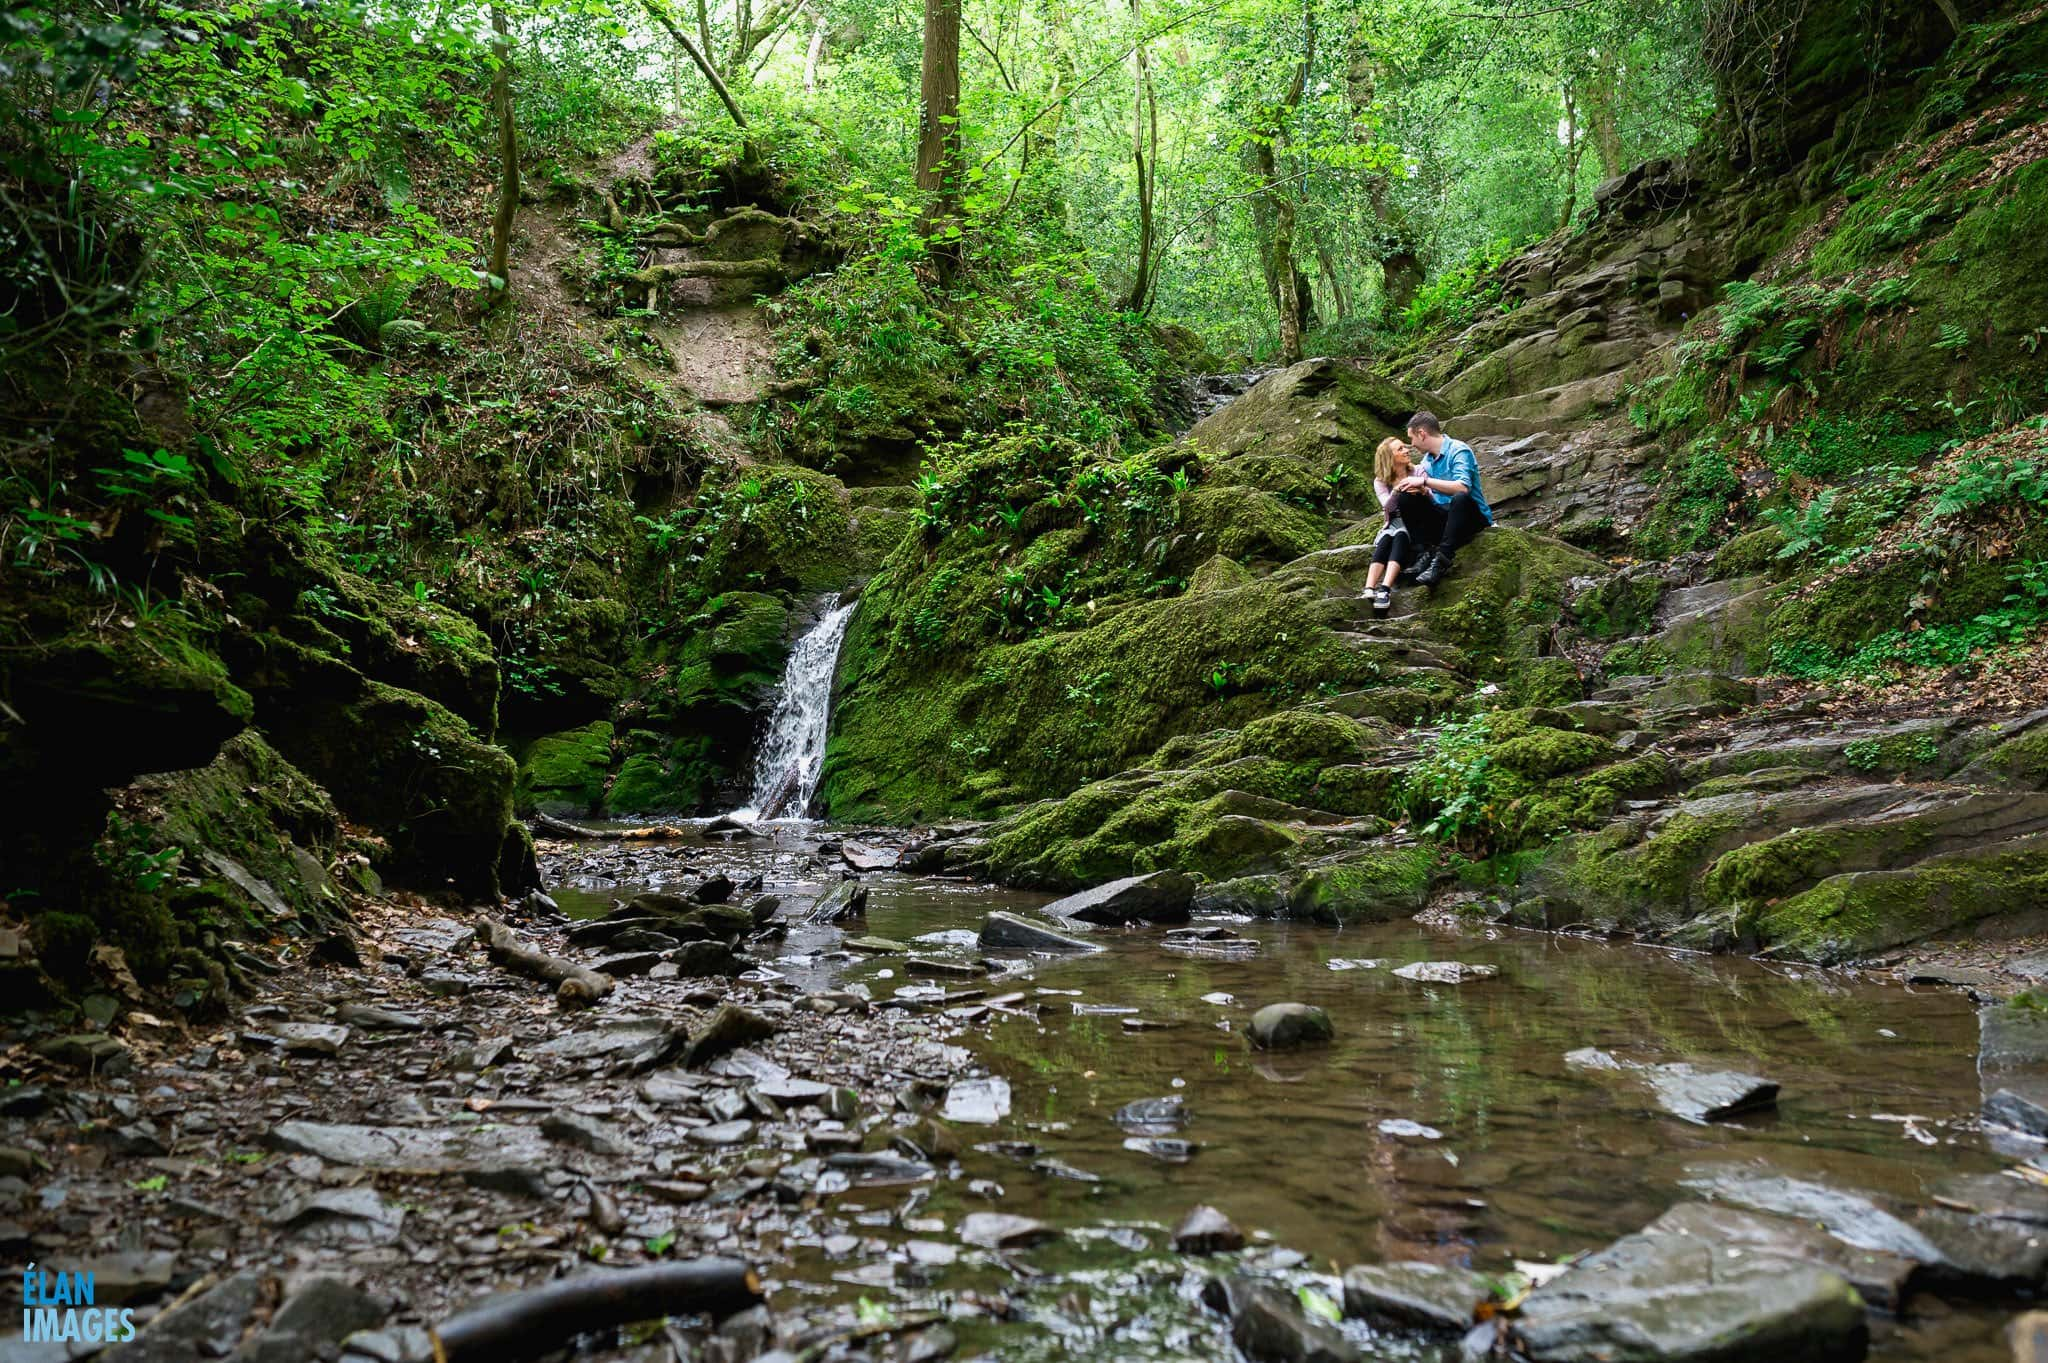 Engagement Photo shoot in bluebell woods near Bristol